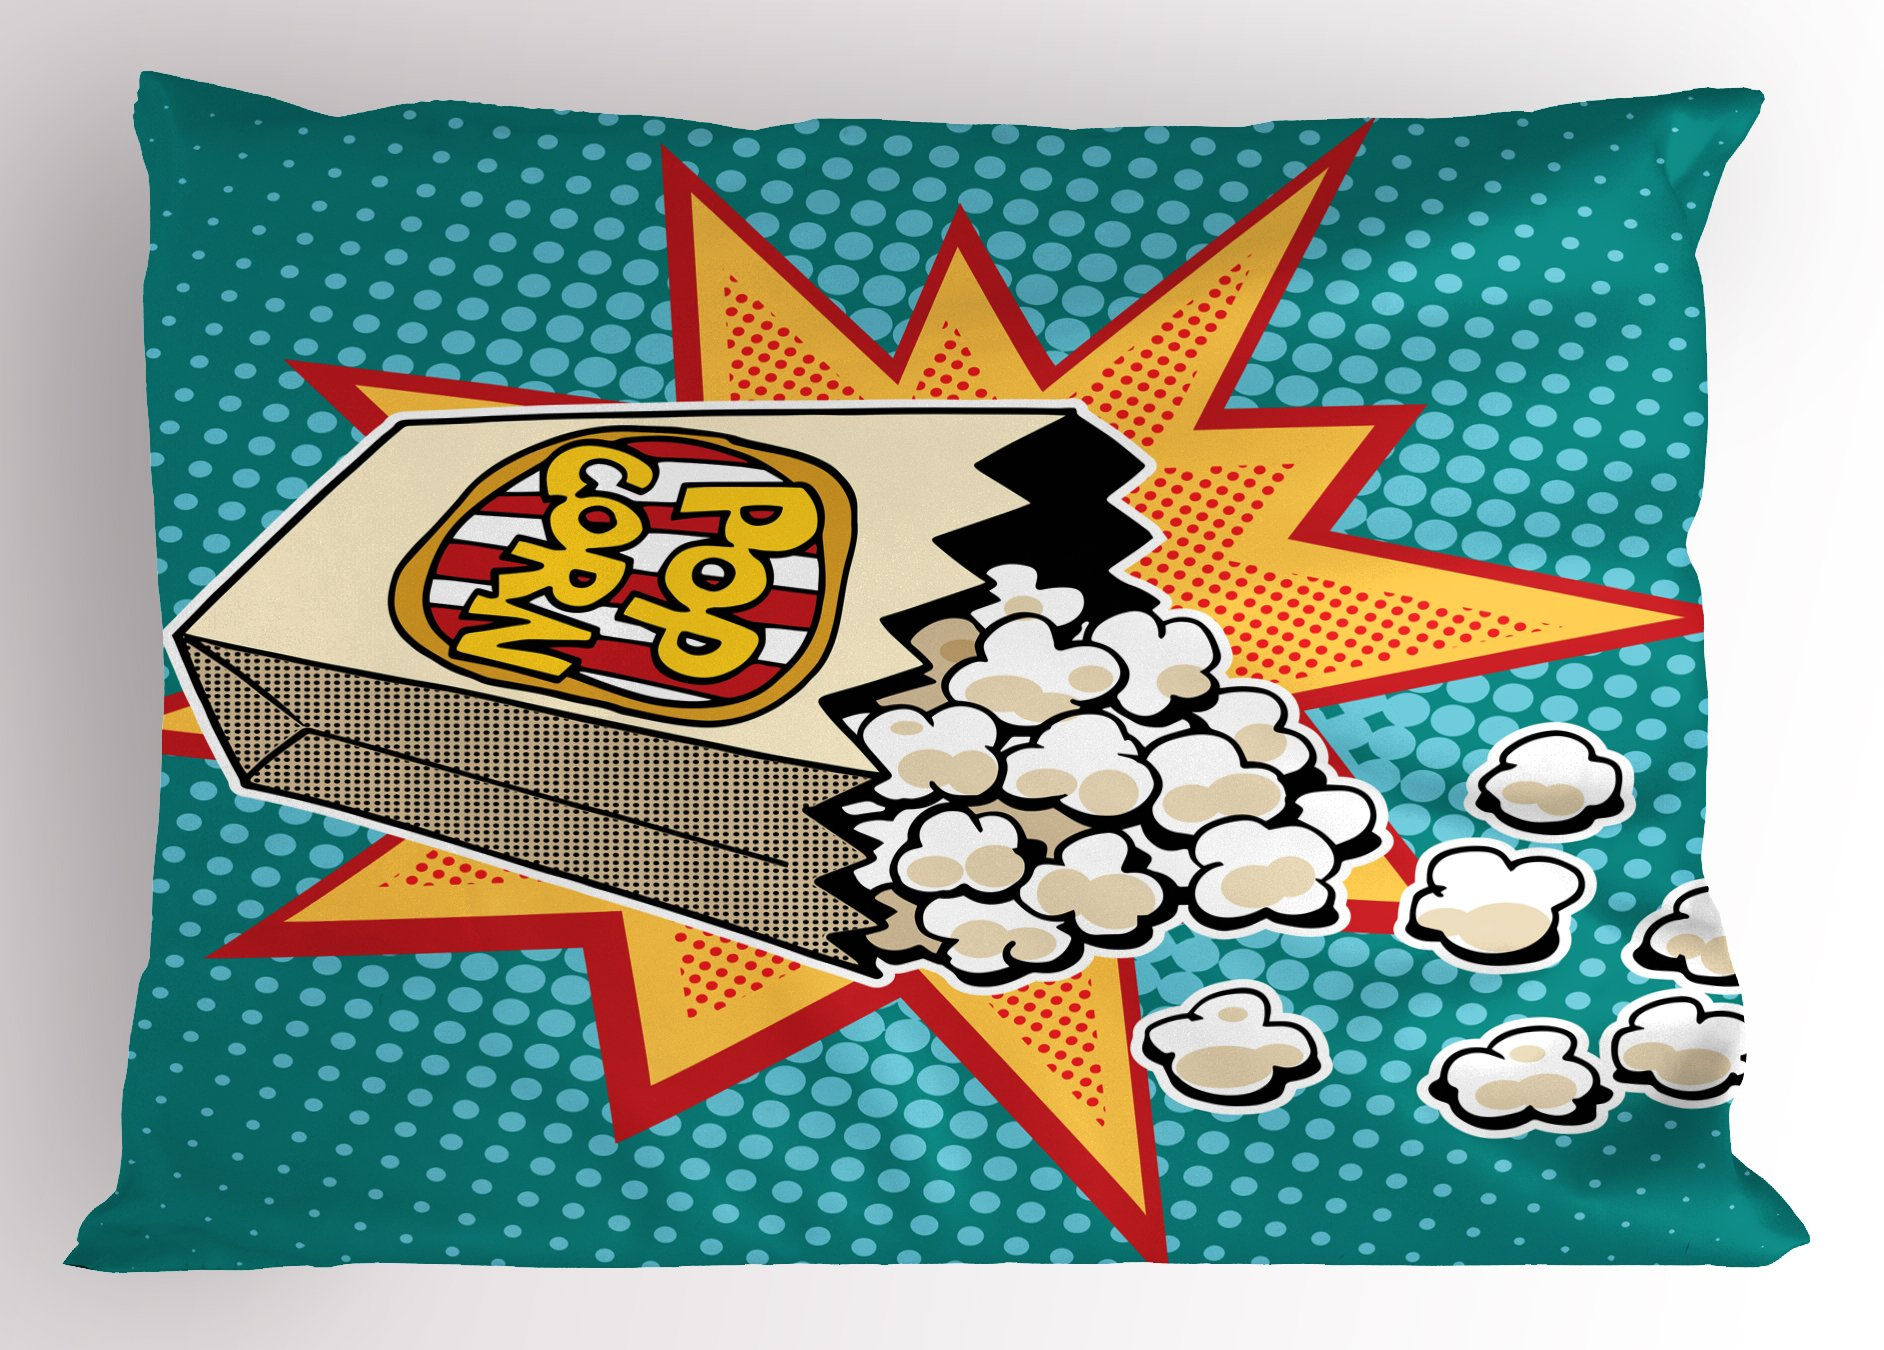 Ambesonne Movie Theater Pillow Sham, Halftone Background with Retro Style Colorful Popcorn Design Cinema Snacks, Decorative Standard King Size Printed Pillowcase, 36 X 20 inches, Multicolor